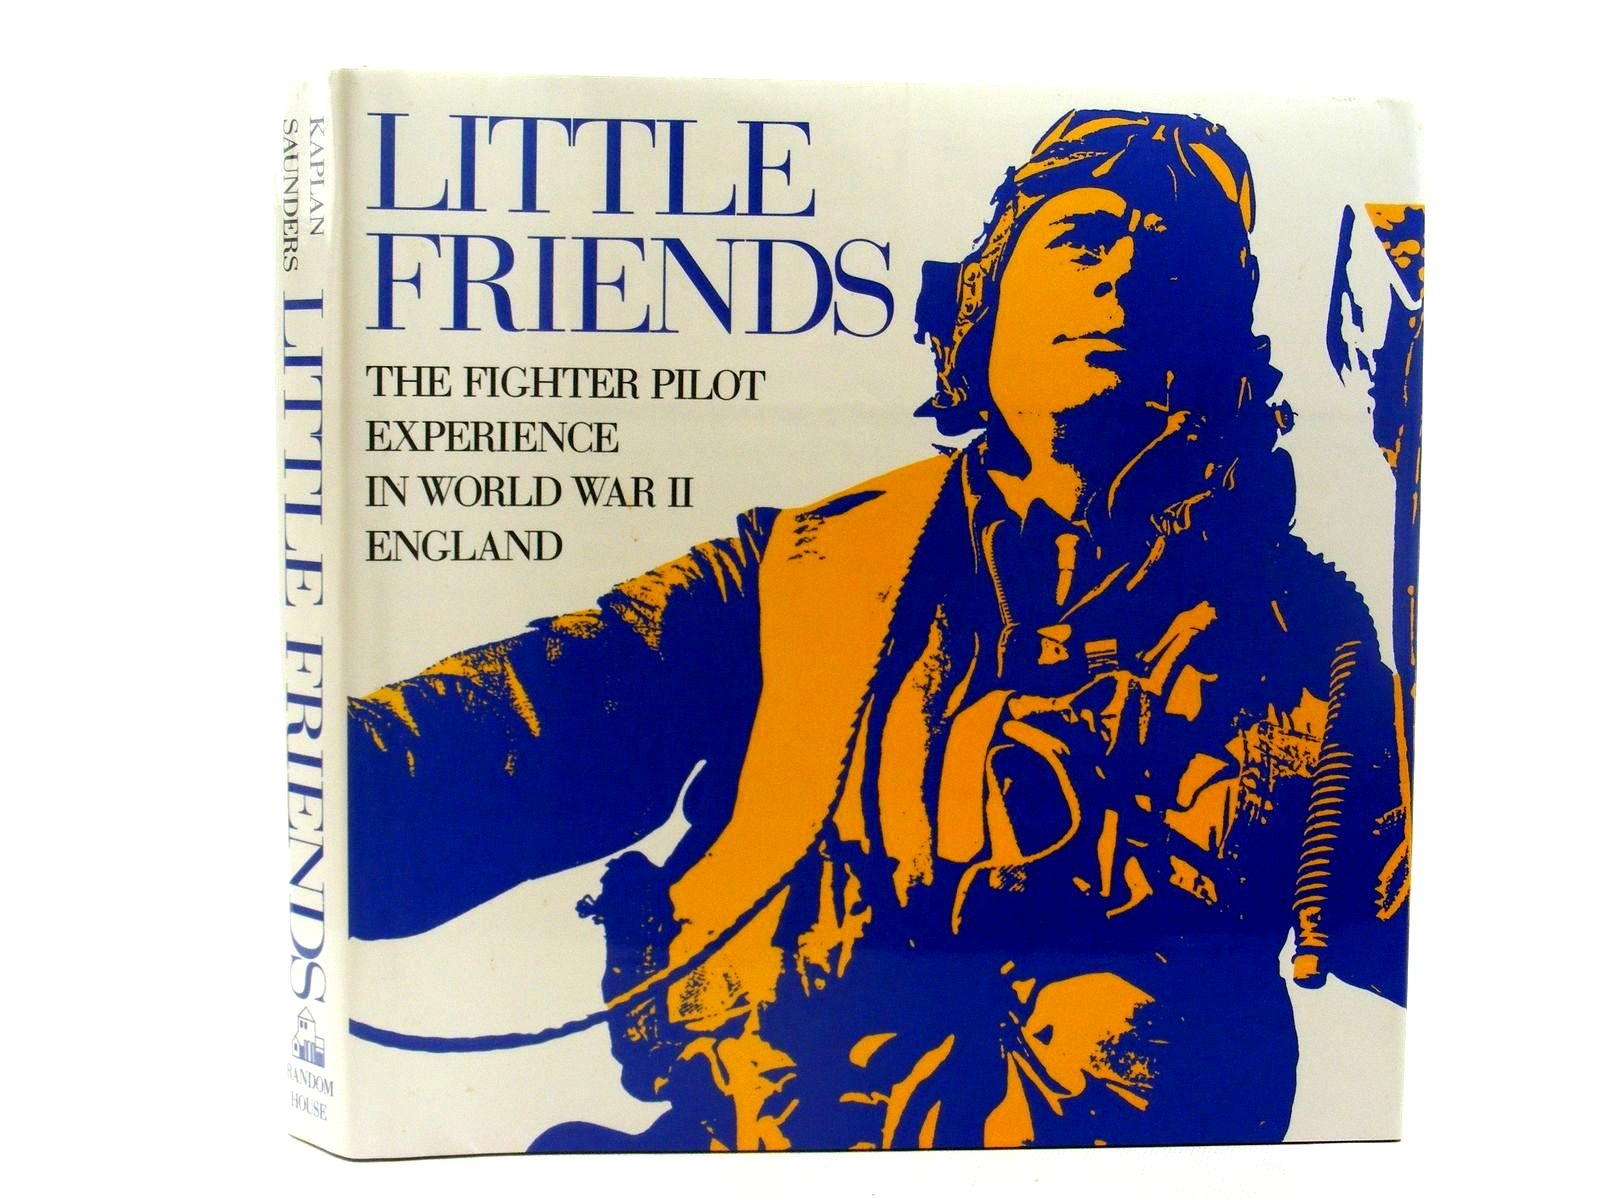 Photo of LITTLE FRIENDS written by Kaplan, Philip Saunders, Andy published by Random House (STOCK CODE: 1610281)  for sale by Stella & Rose's Books